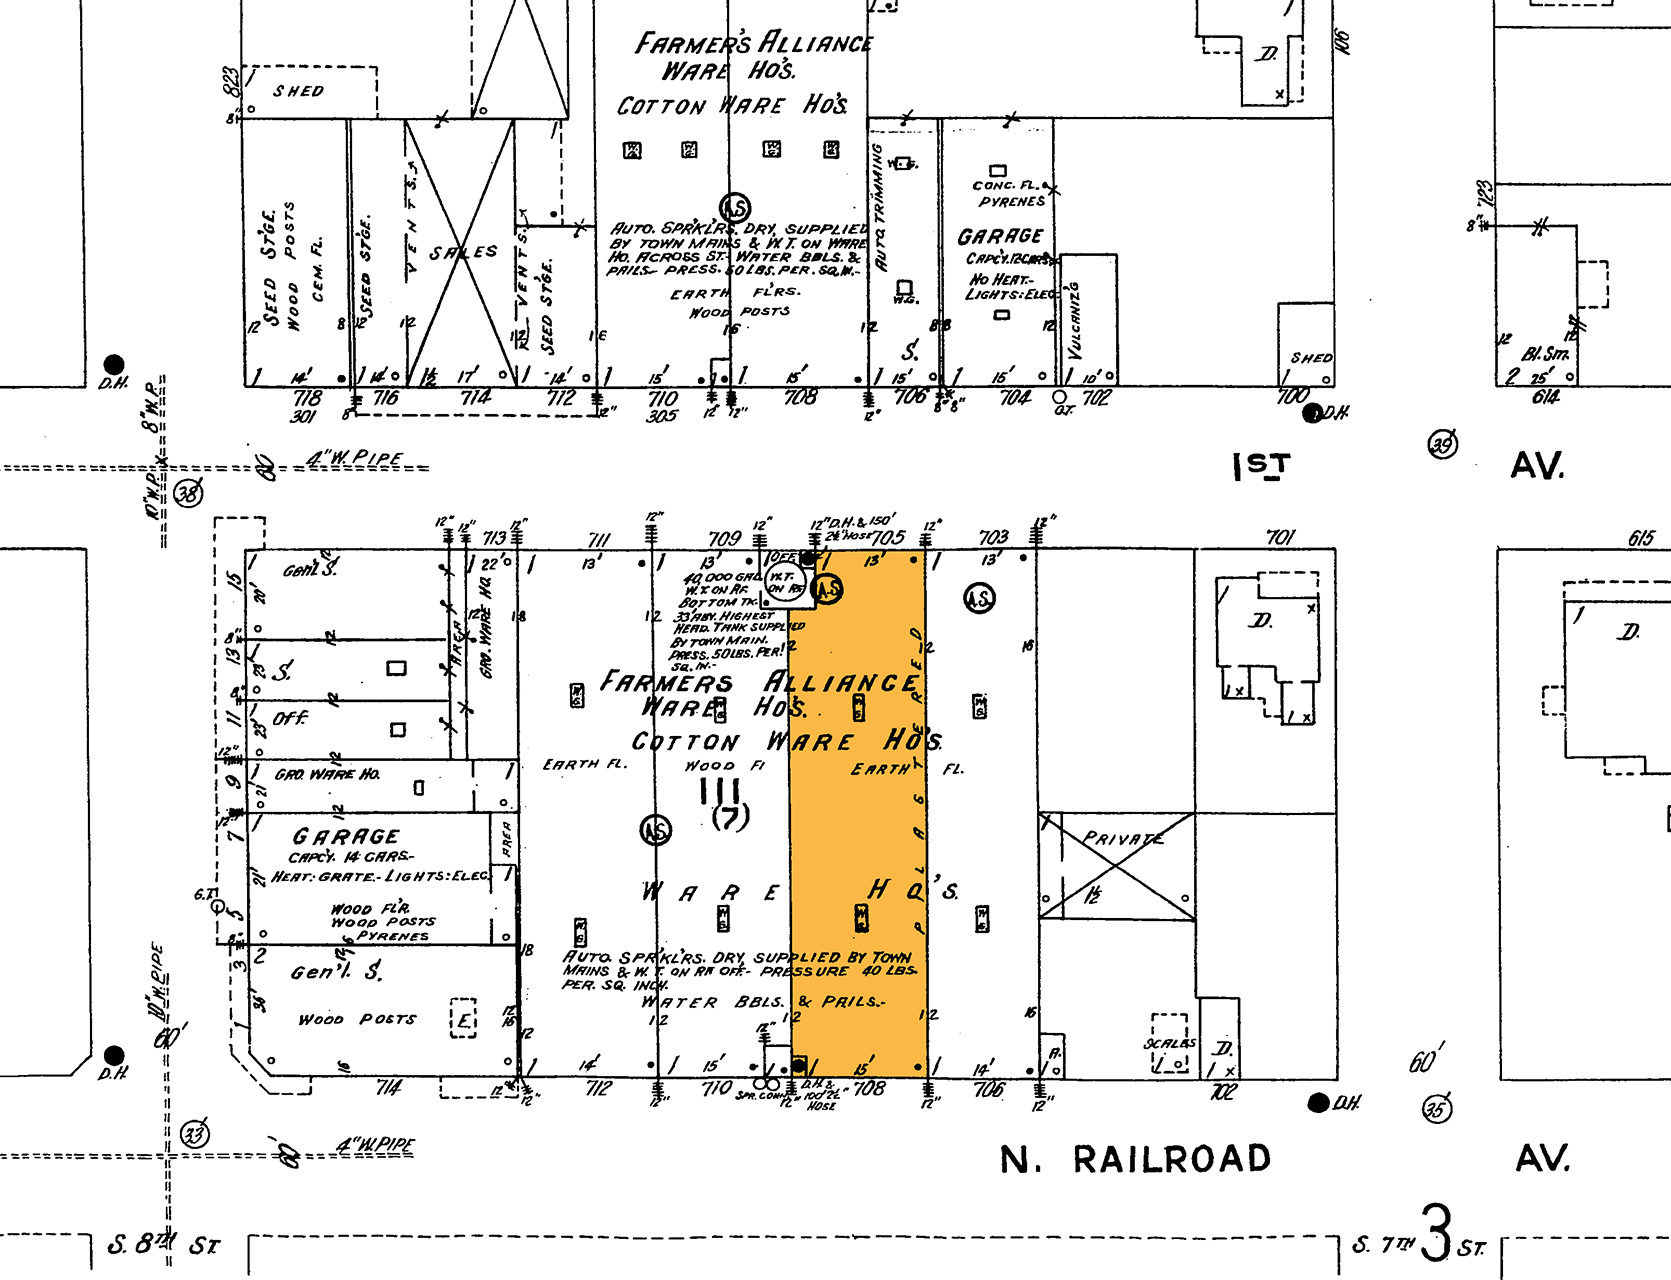 LOCAL HISTORIES: 1924 Sanborn map reveals the structure serving as the Farmers' Alliance Cotton Warehouses.  Founded in 1875, Farmers' Alliance united southern farmers by establishing cooperative stores, warehouses, and cotton gins. The warehouses participated in a steady flow of goods between the local farms and regional rails.